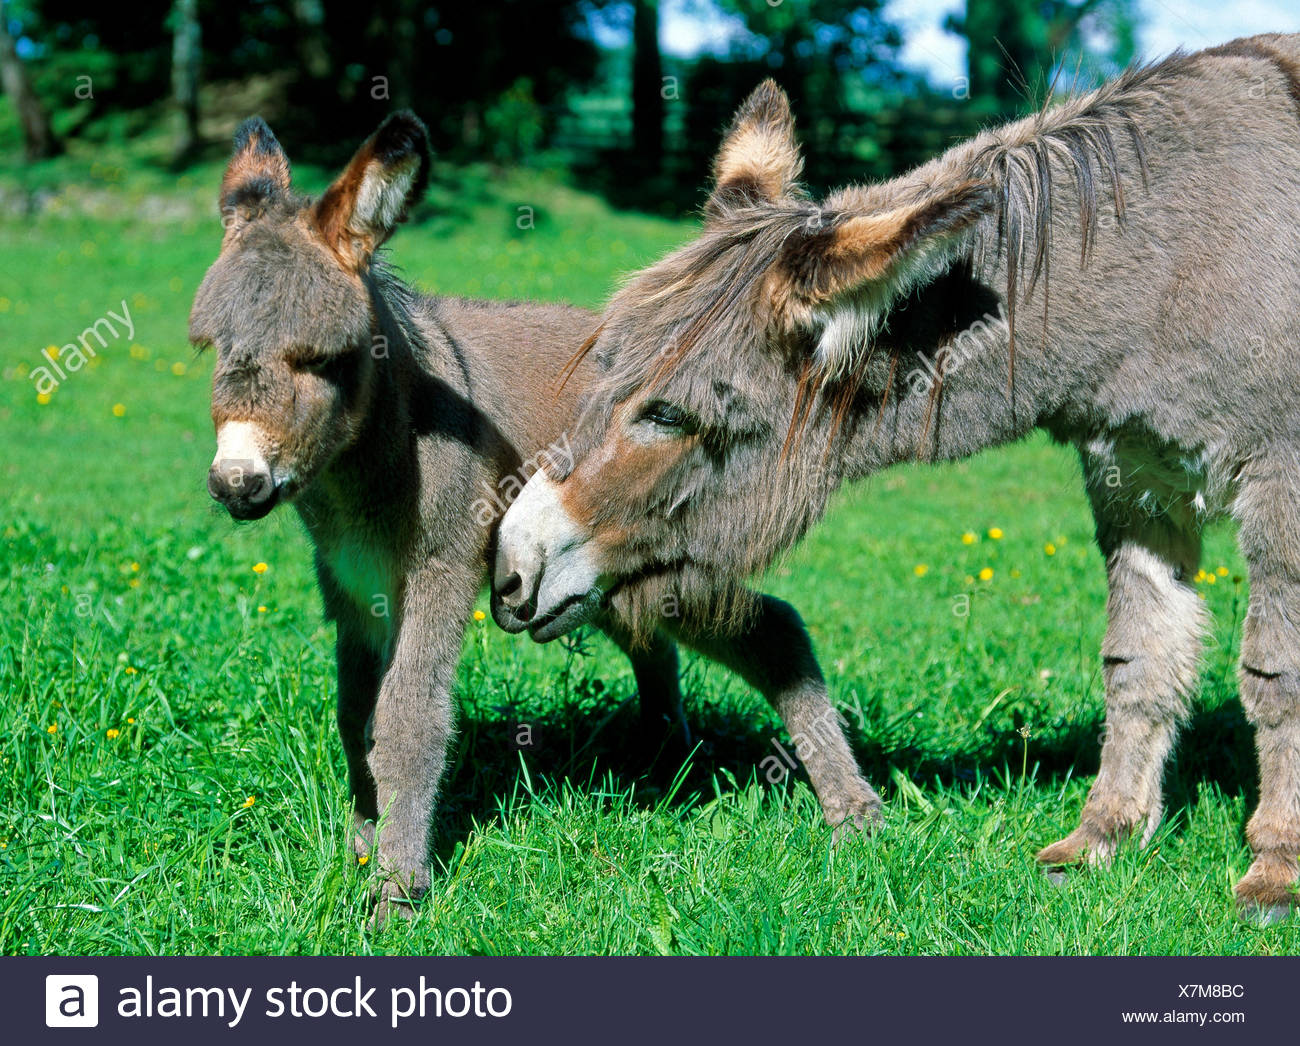 Donkey mare leading foal for grazing, summery pasture - Stock Image